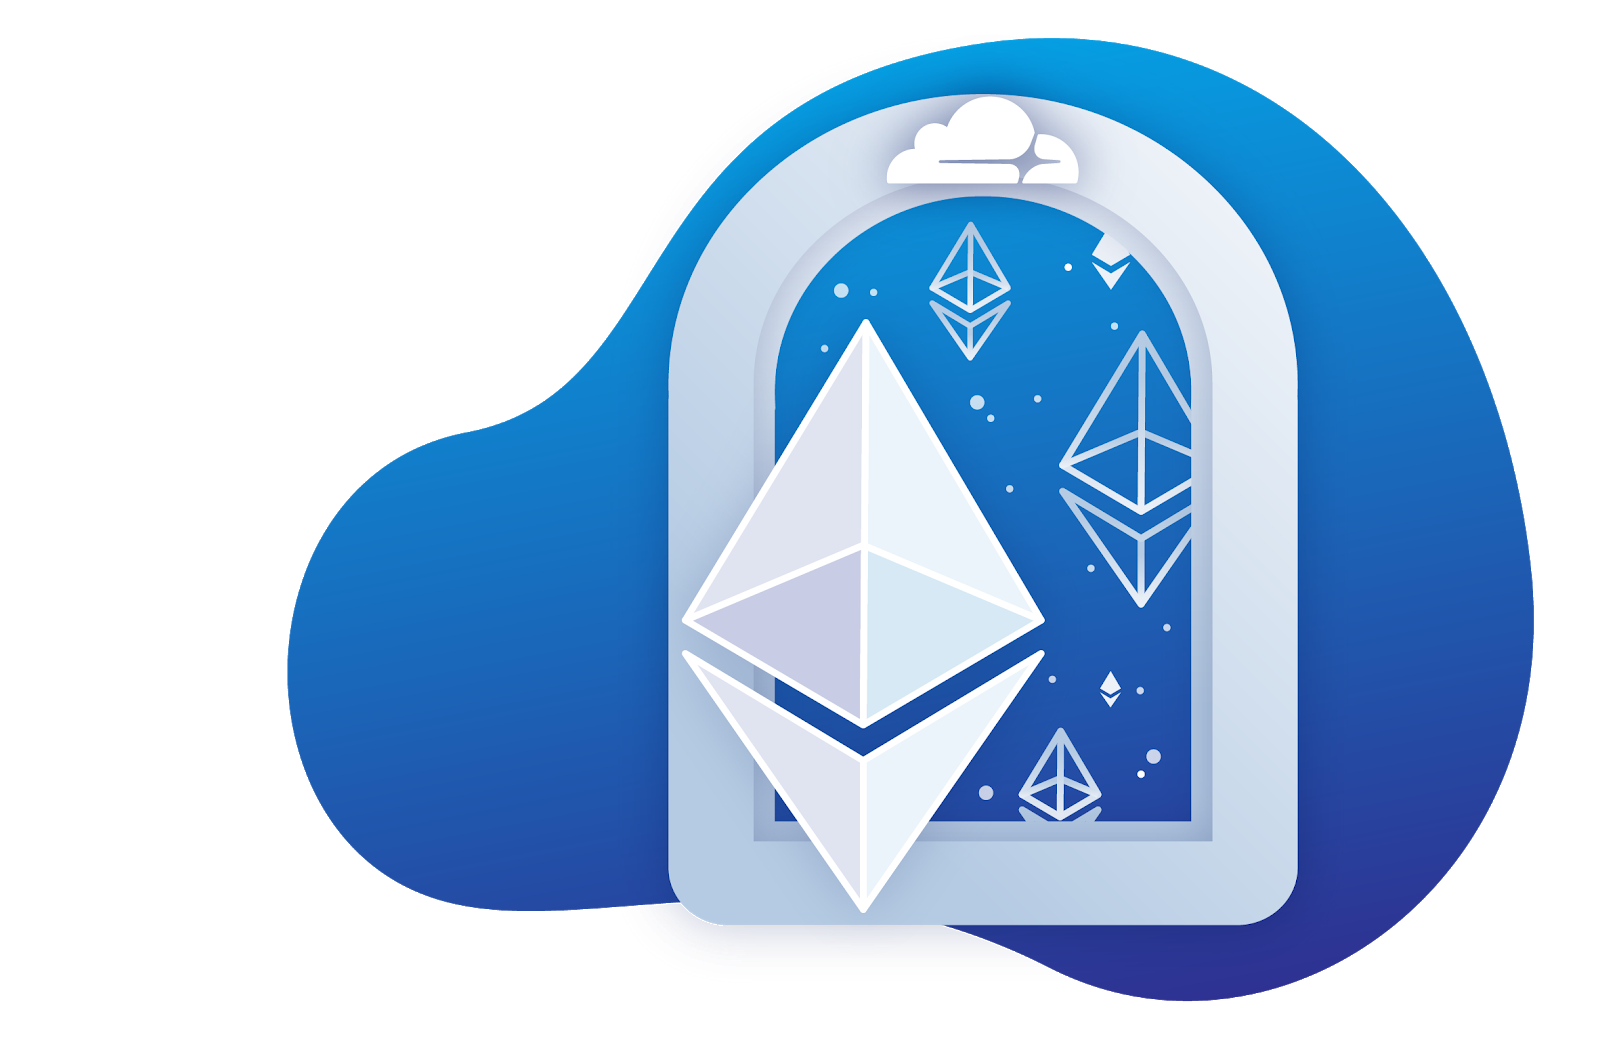 Cloudflare's Ethereum Gateway